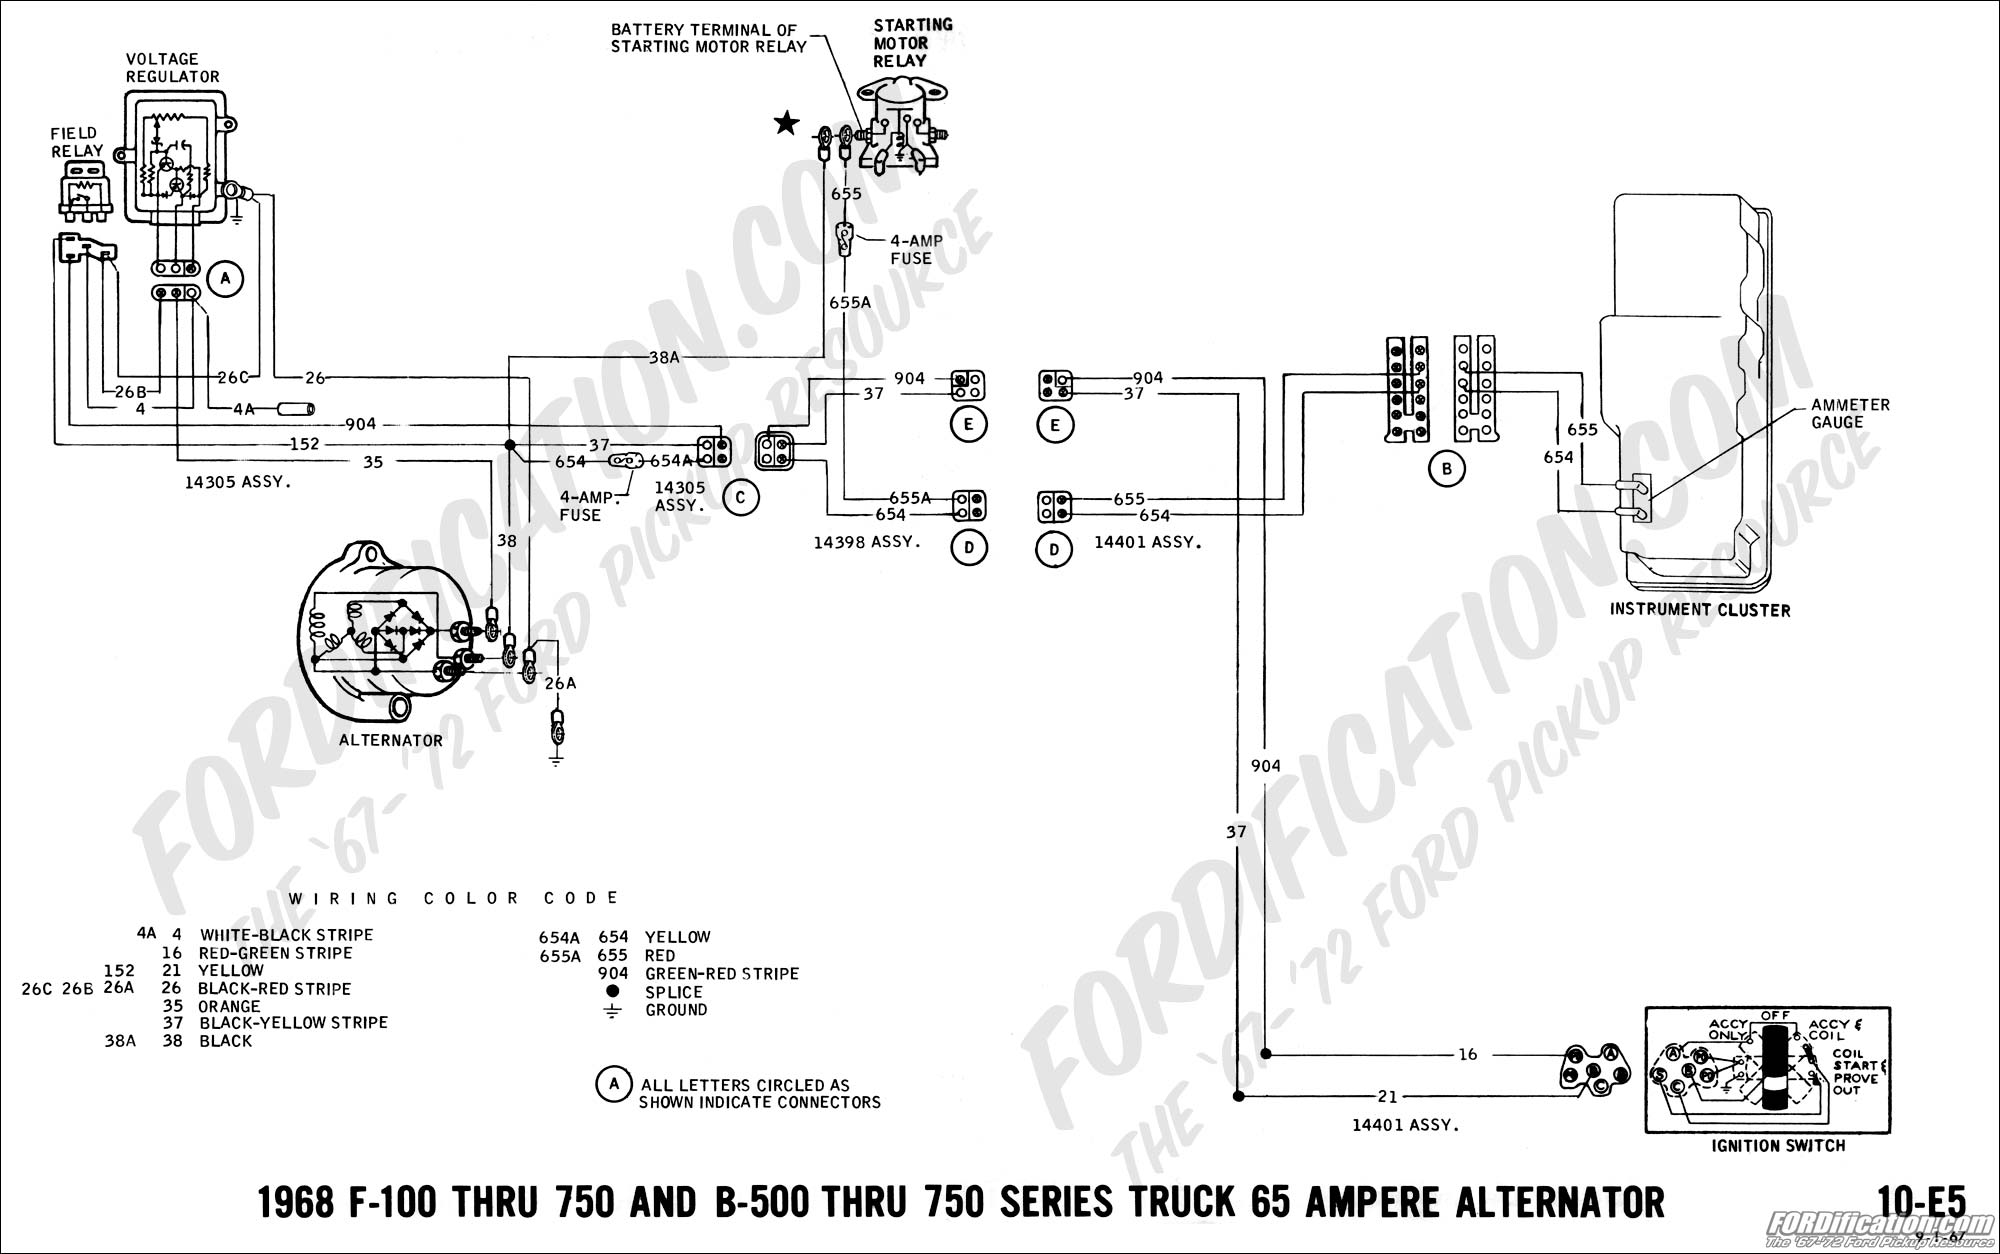 1968 ford f750 wiring diagram block and schematic diagrams u2022 rh  lazysupply co 2002 Ford F650 Wiring-Diagram 2000 Ford F650 Wiring-Diagram